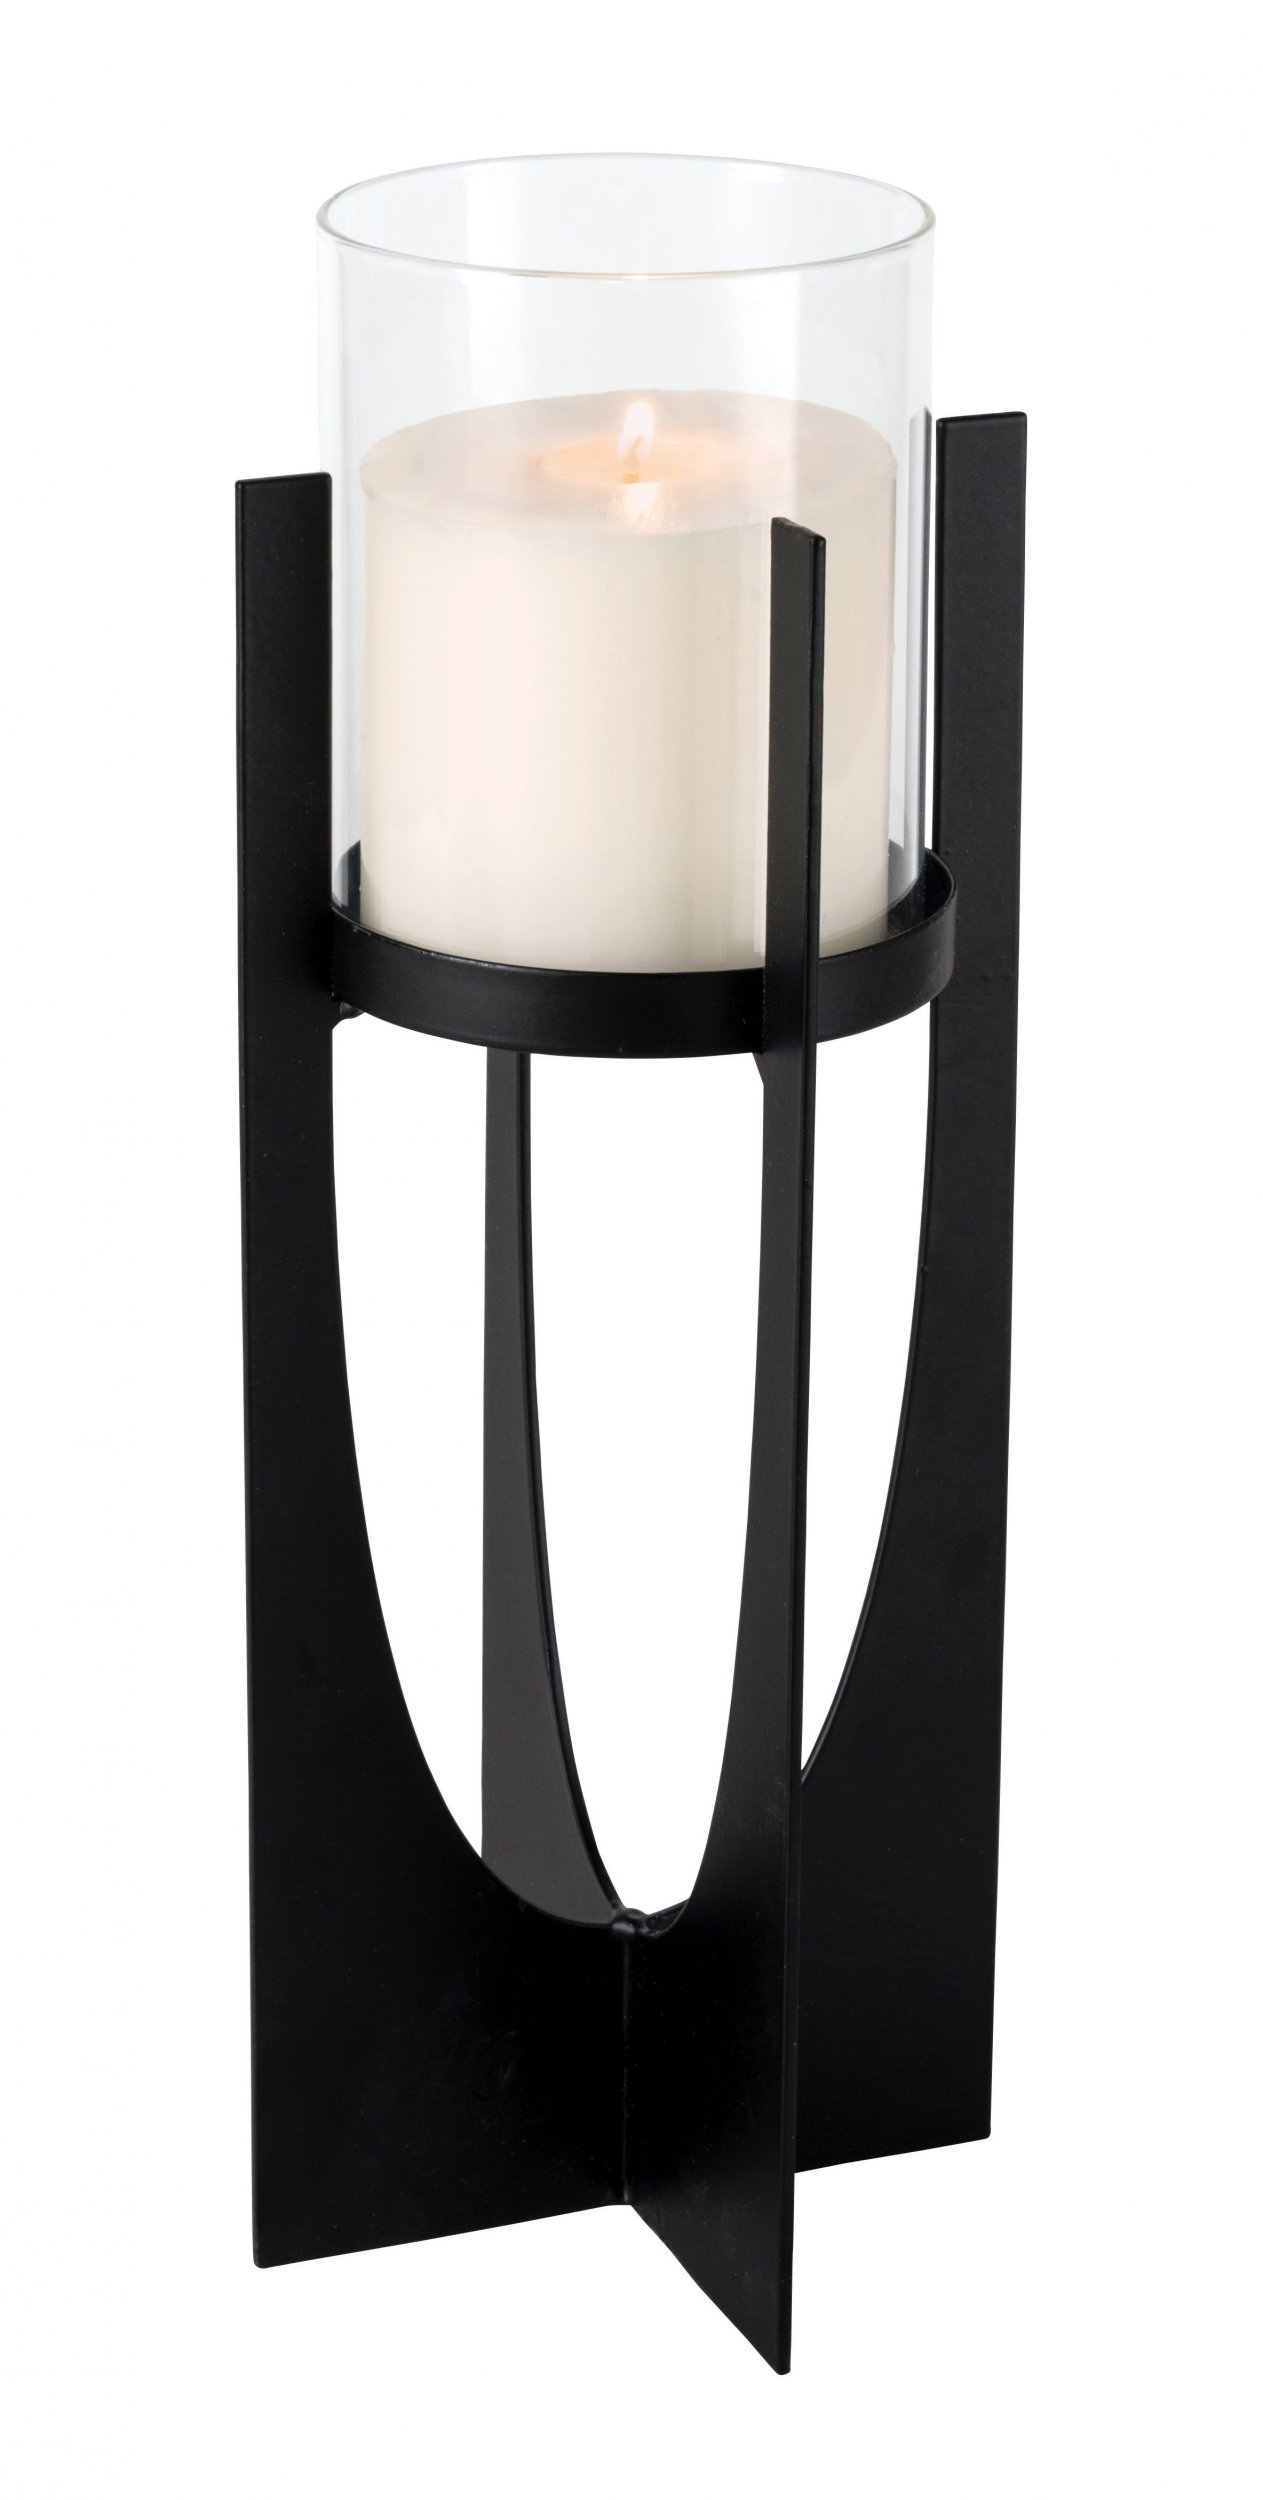 17528caf9a The Outdoor Living Co Black Metal Candle Holder - Small at Barnitts Online  Store, UK | Barnitts